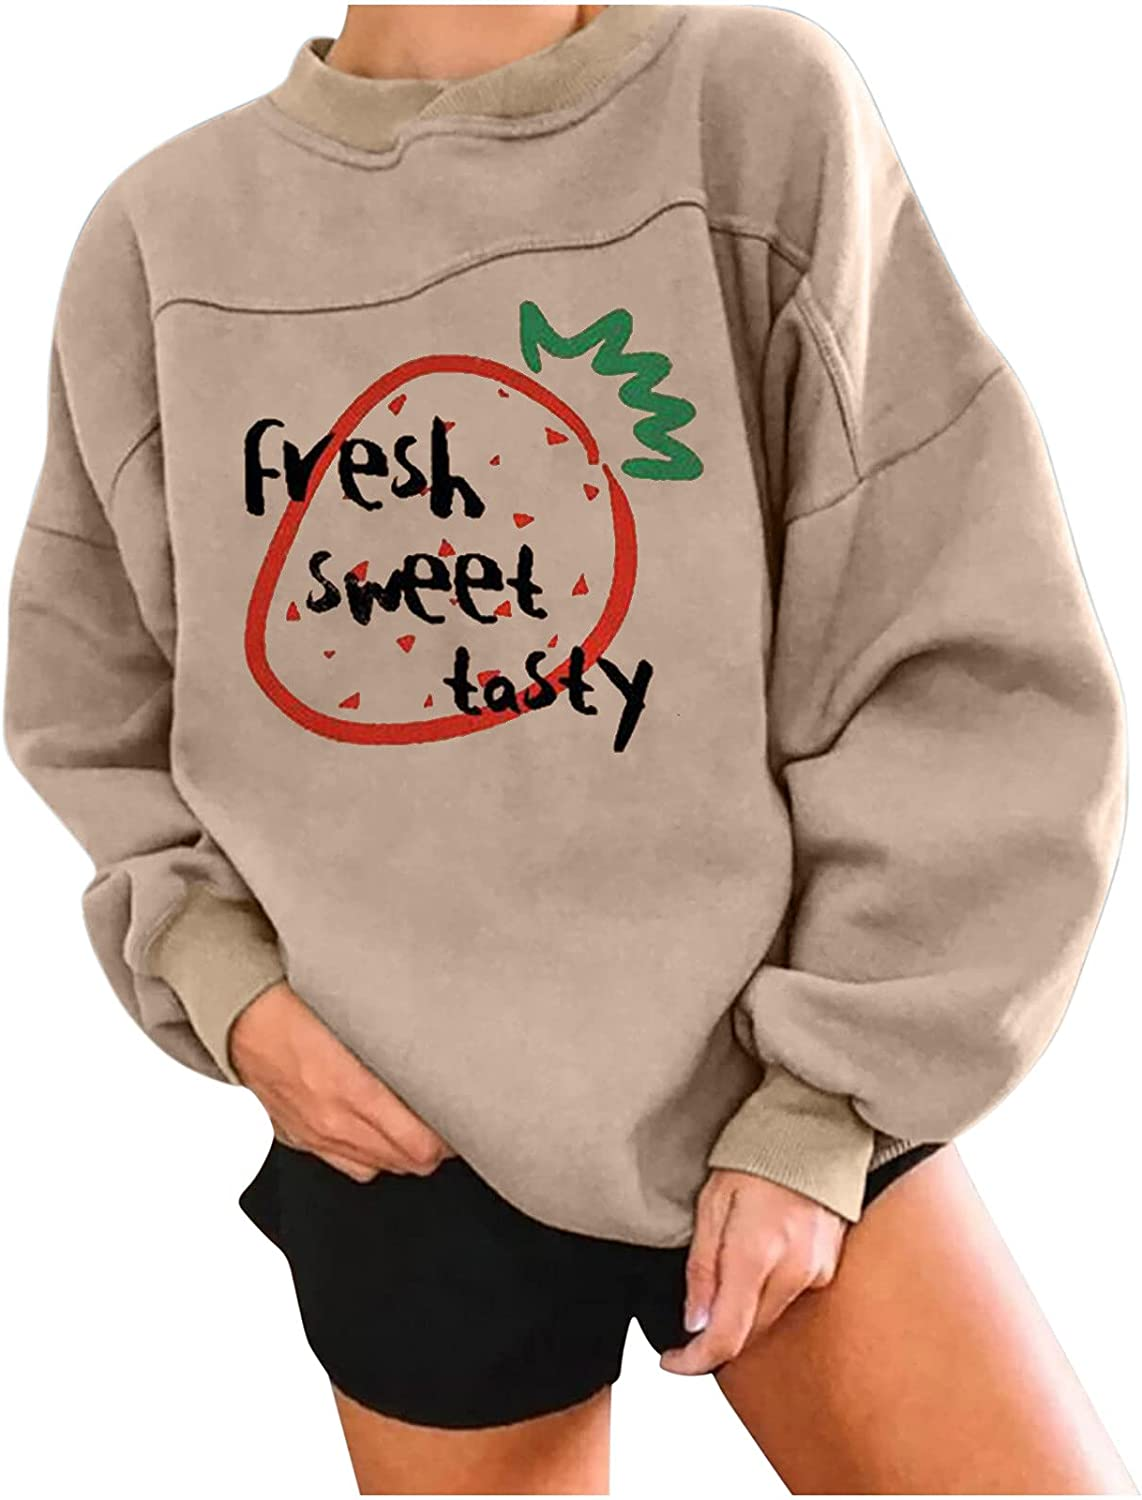 Pullover Tops for Women Long Sleeve Sweatshirts Cute Graphic Shirts Plus Size Winter Loose Blouse(XXL,Khaki)